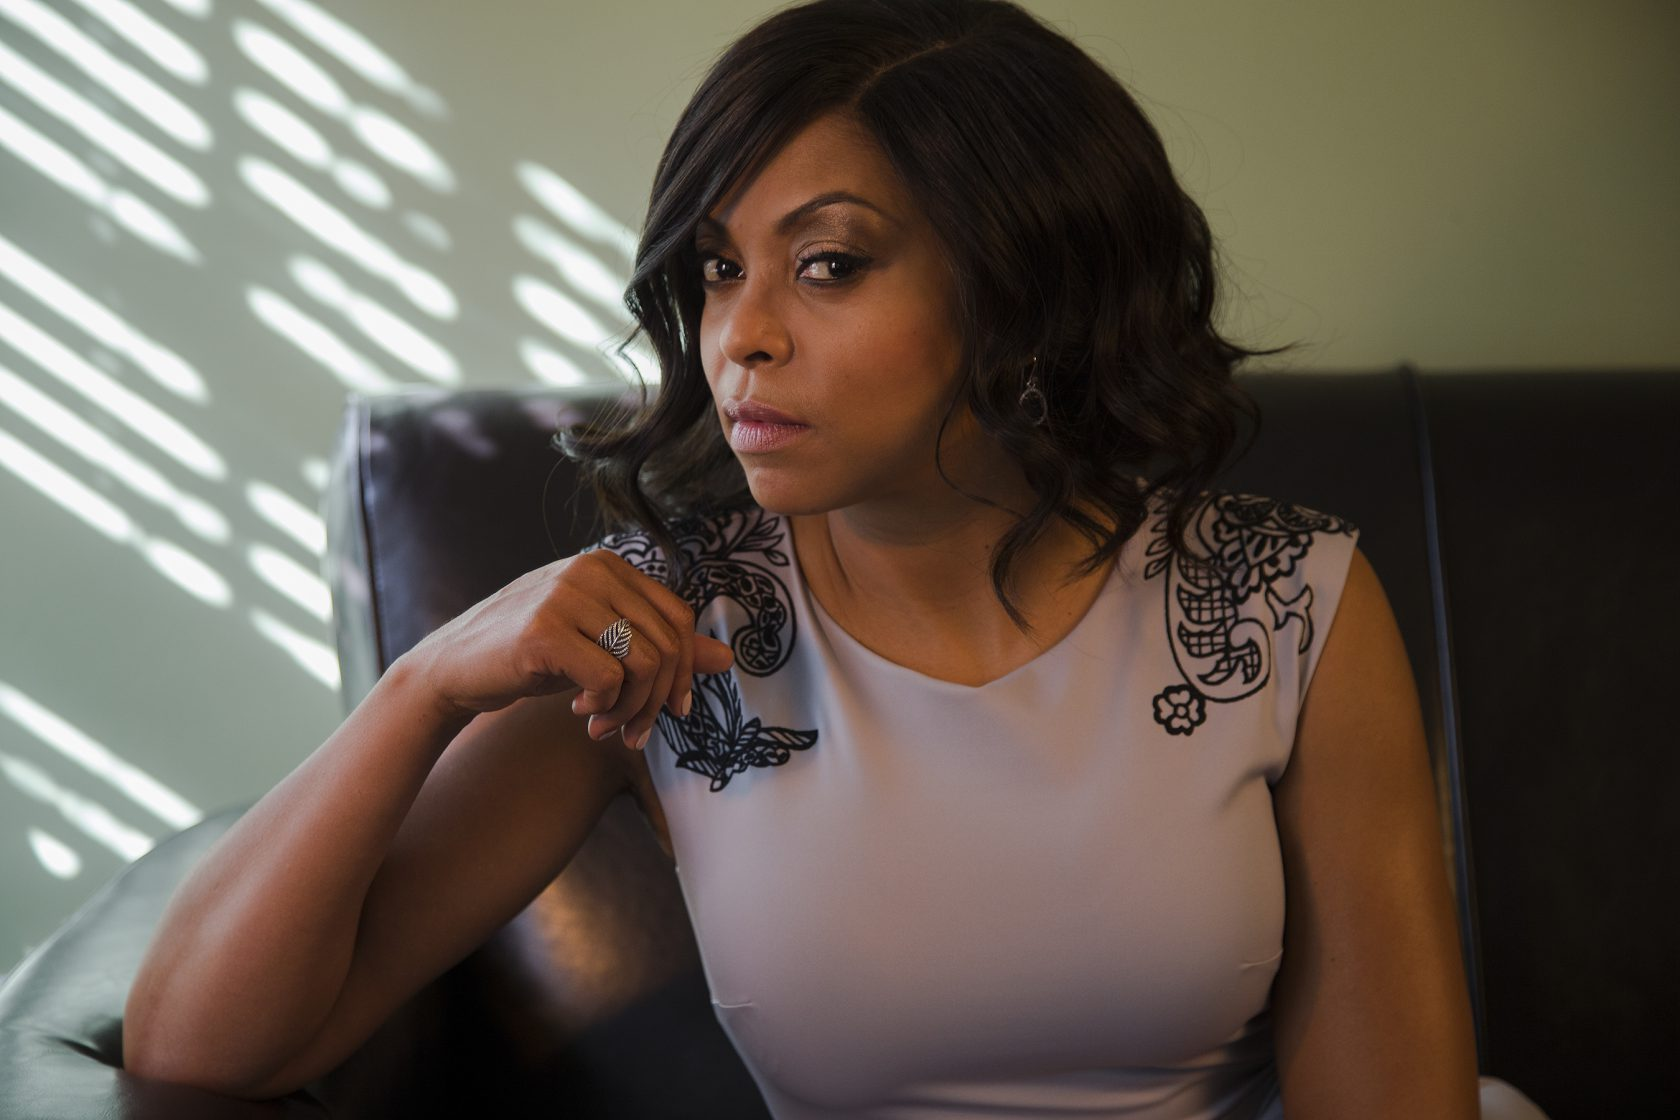 LOS ANGELES, CA - MARCH 6, 2015: Tariji P. Henson has become the hottest actress in primetime thanks